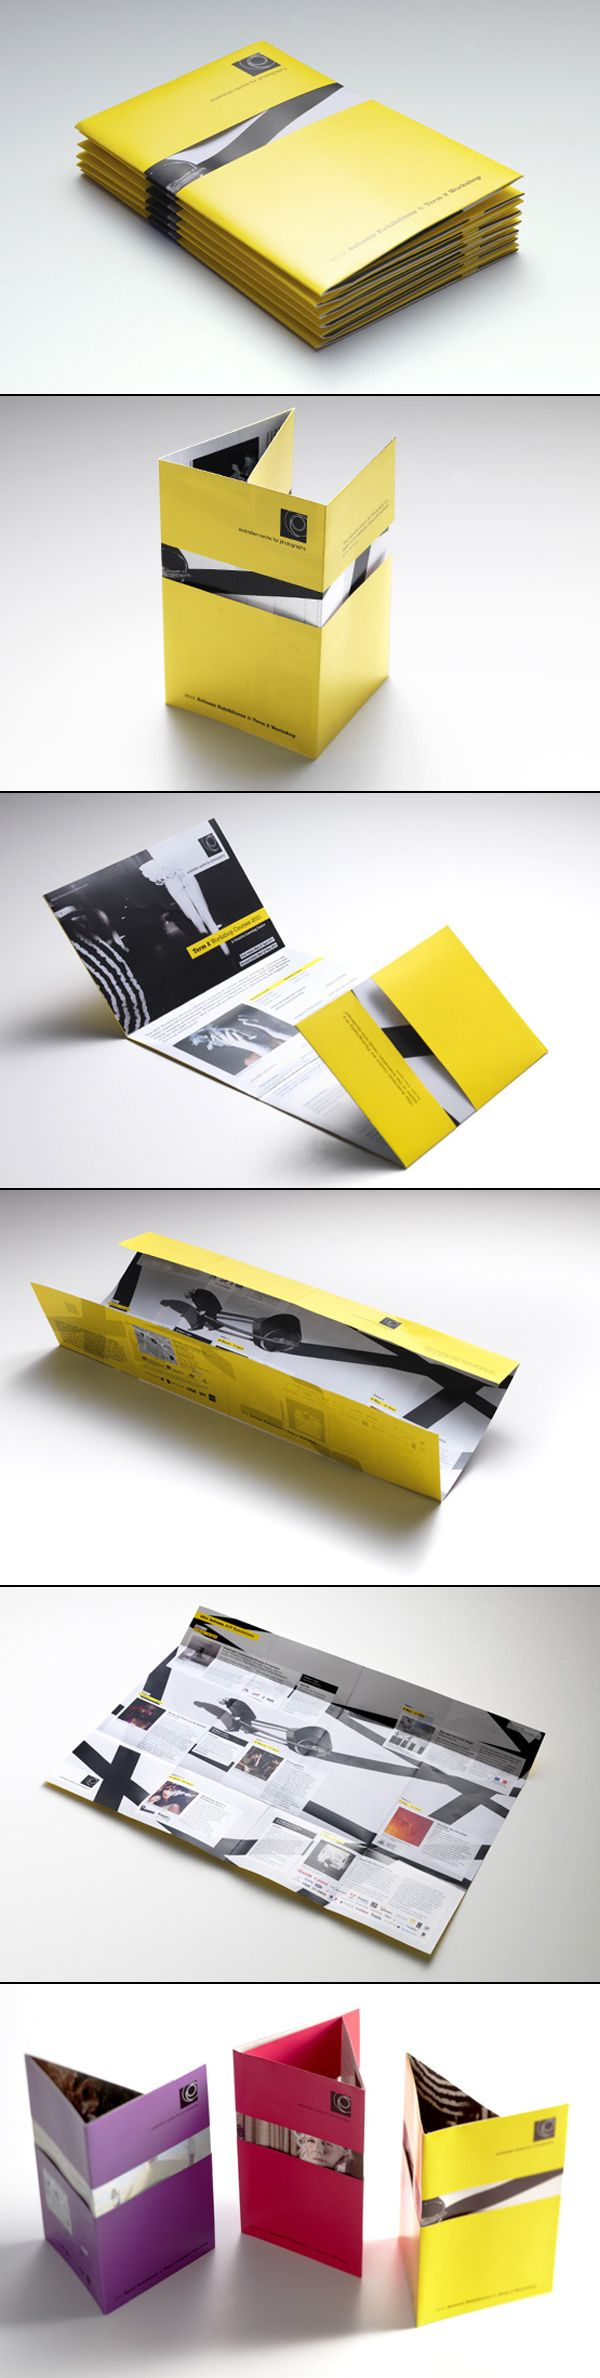 brochure printing and design - 25 creative brochure designs for inspiration creatives wall